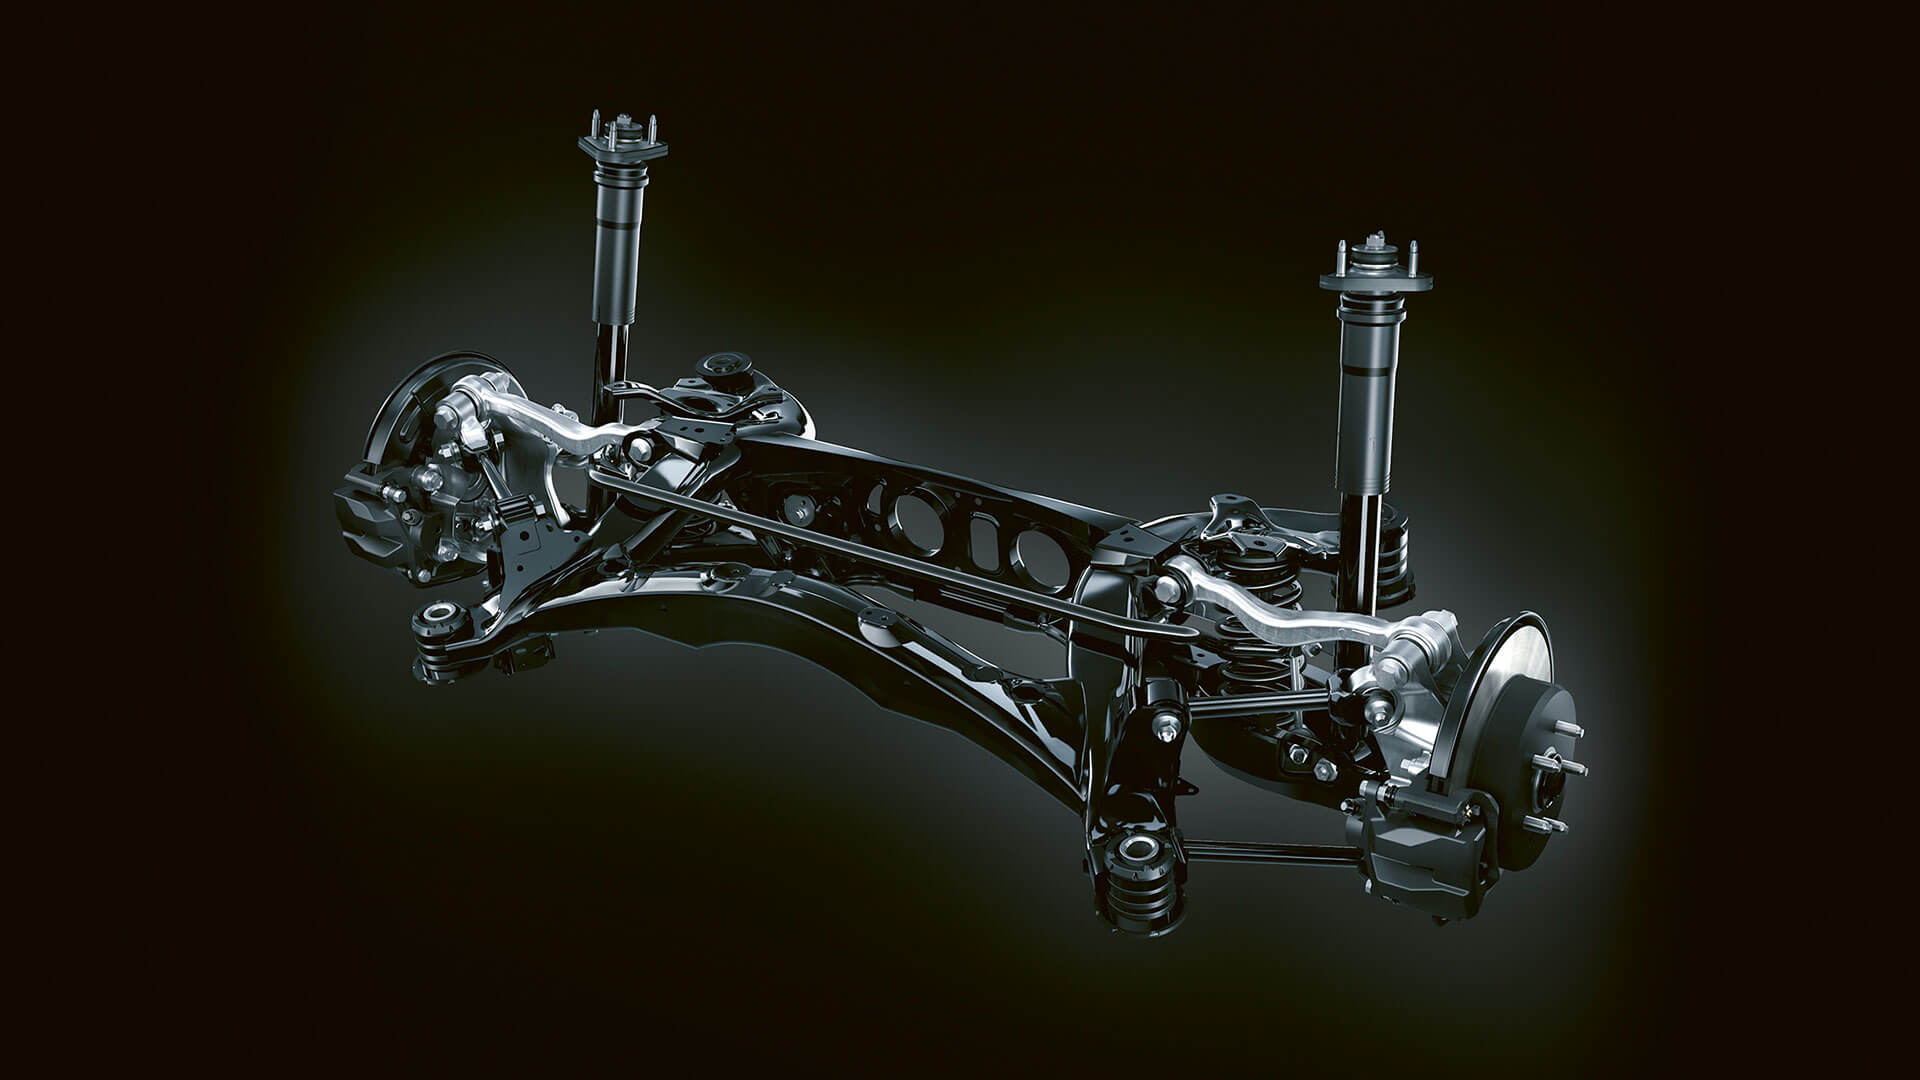 2018 lexus rc hotspot rear suspension